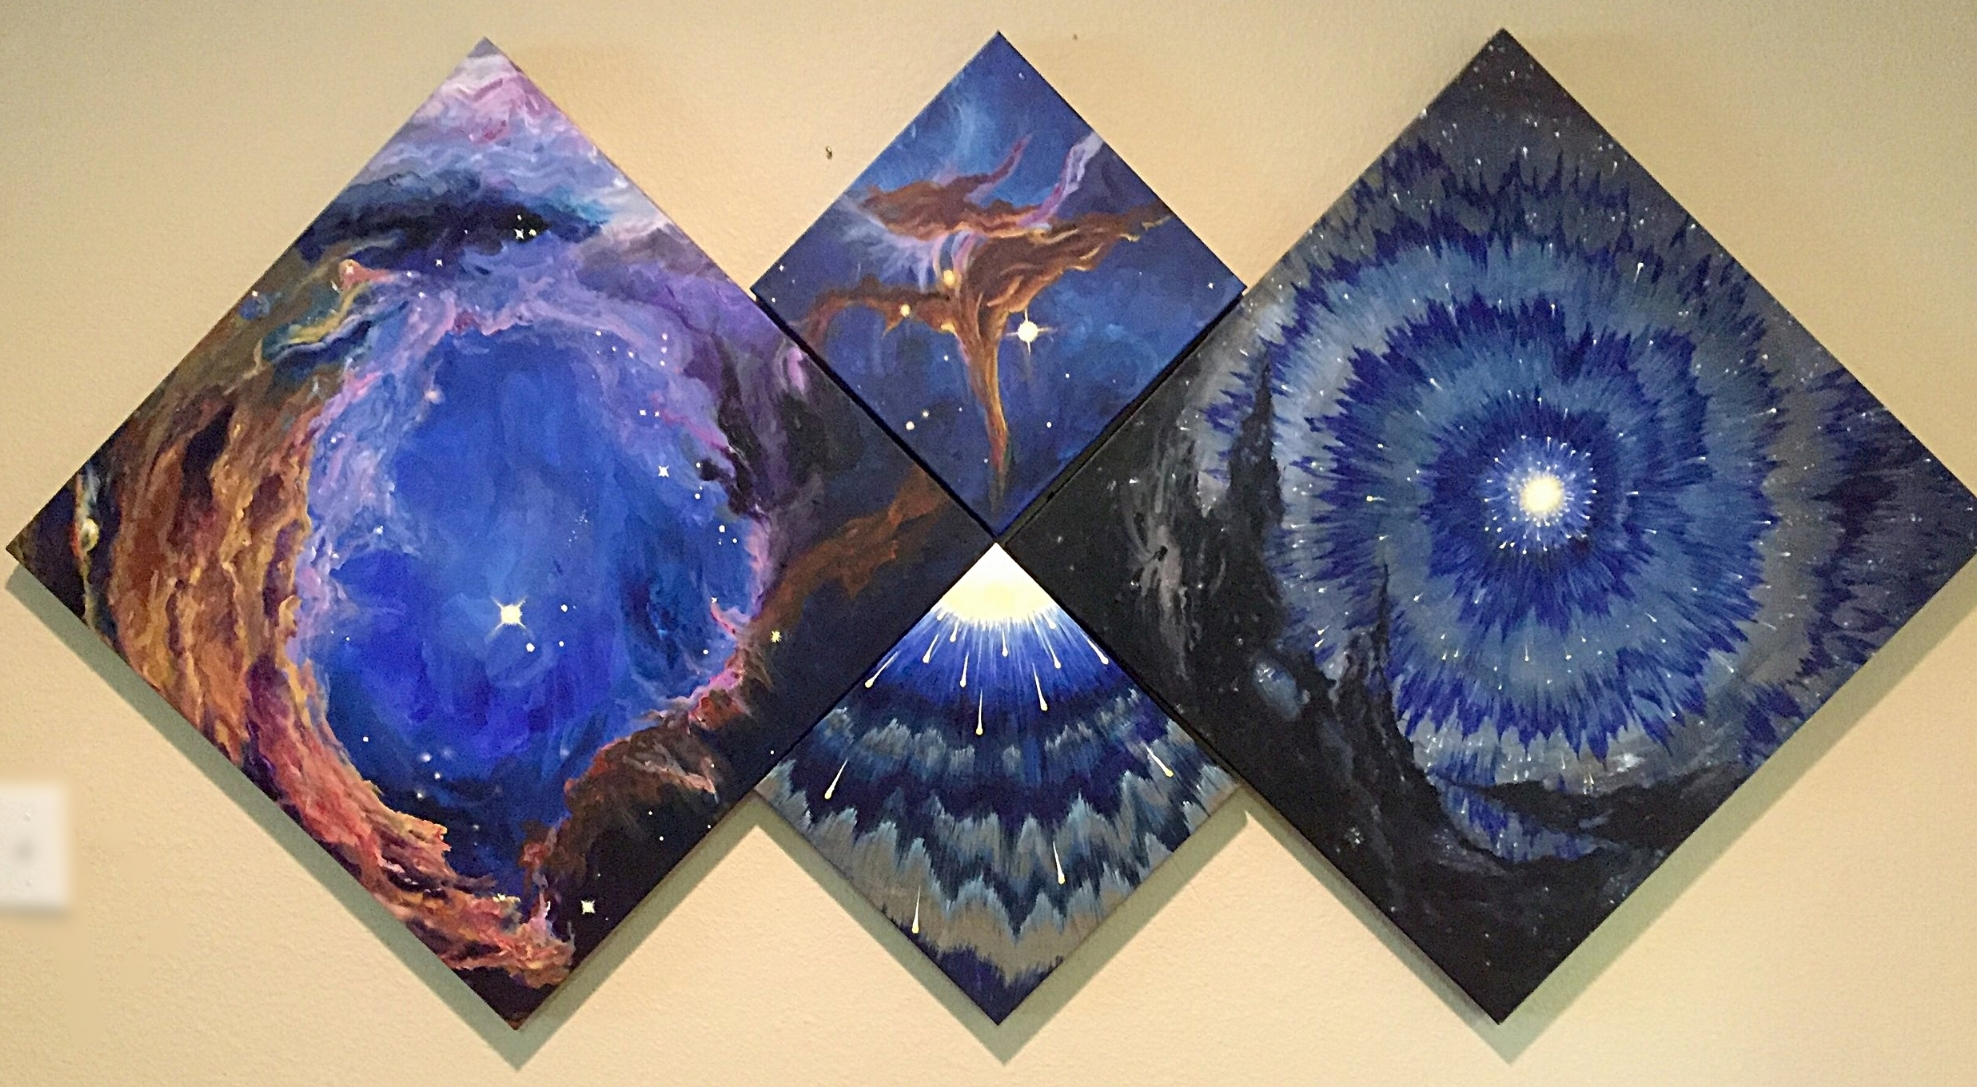 Star Gazing and Starburst with their companion pieces                 set of 4      Originals     1200.            Giclee on canvas enhanced    $800.